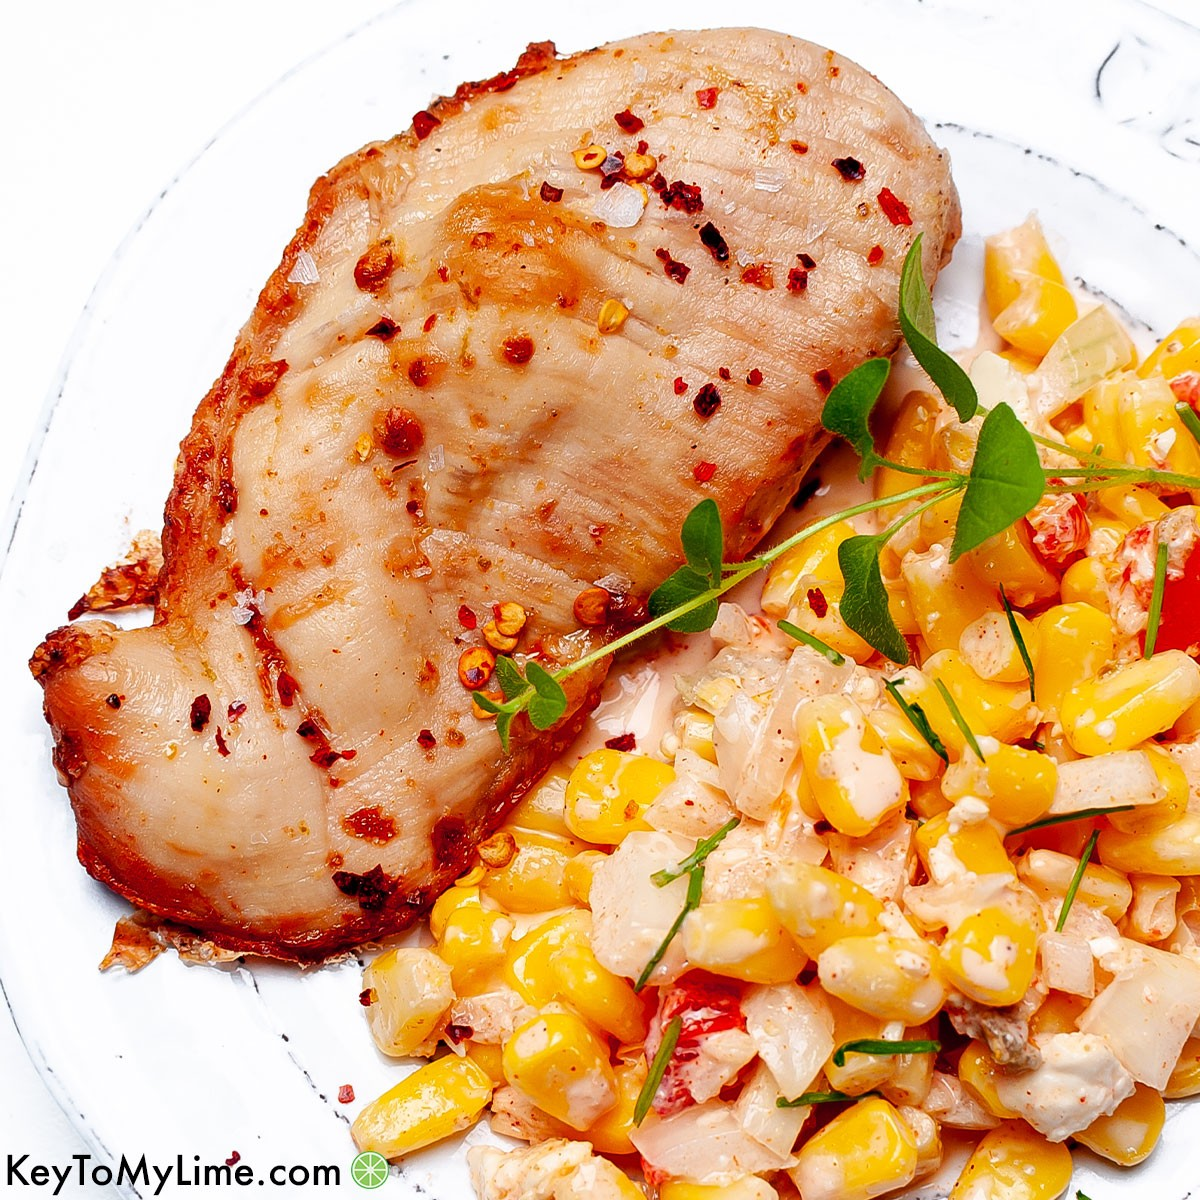 The best chili lime chicken recipe.